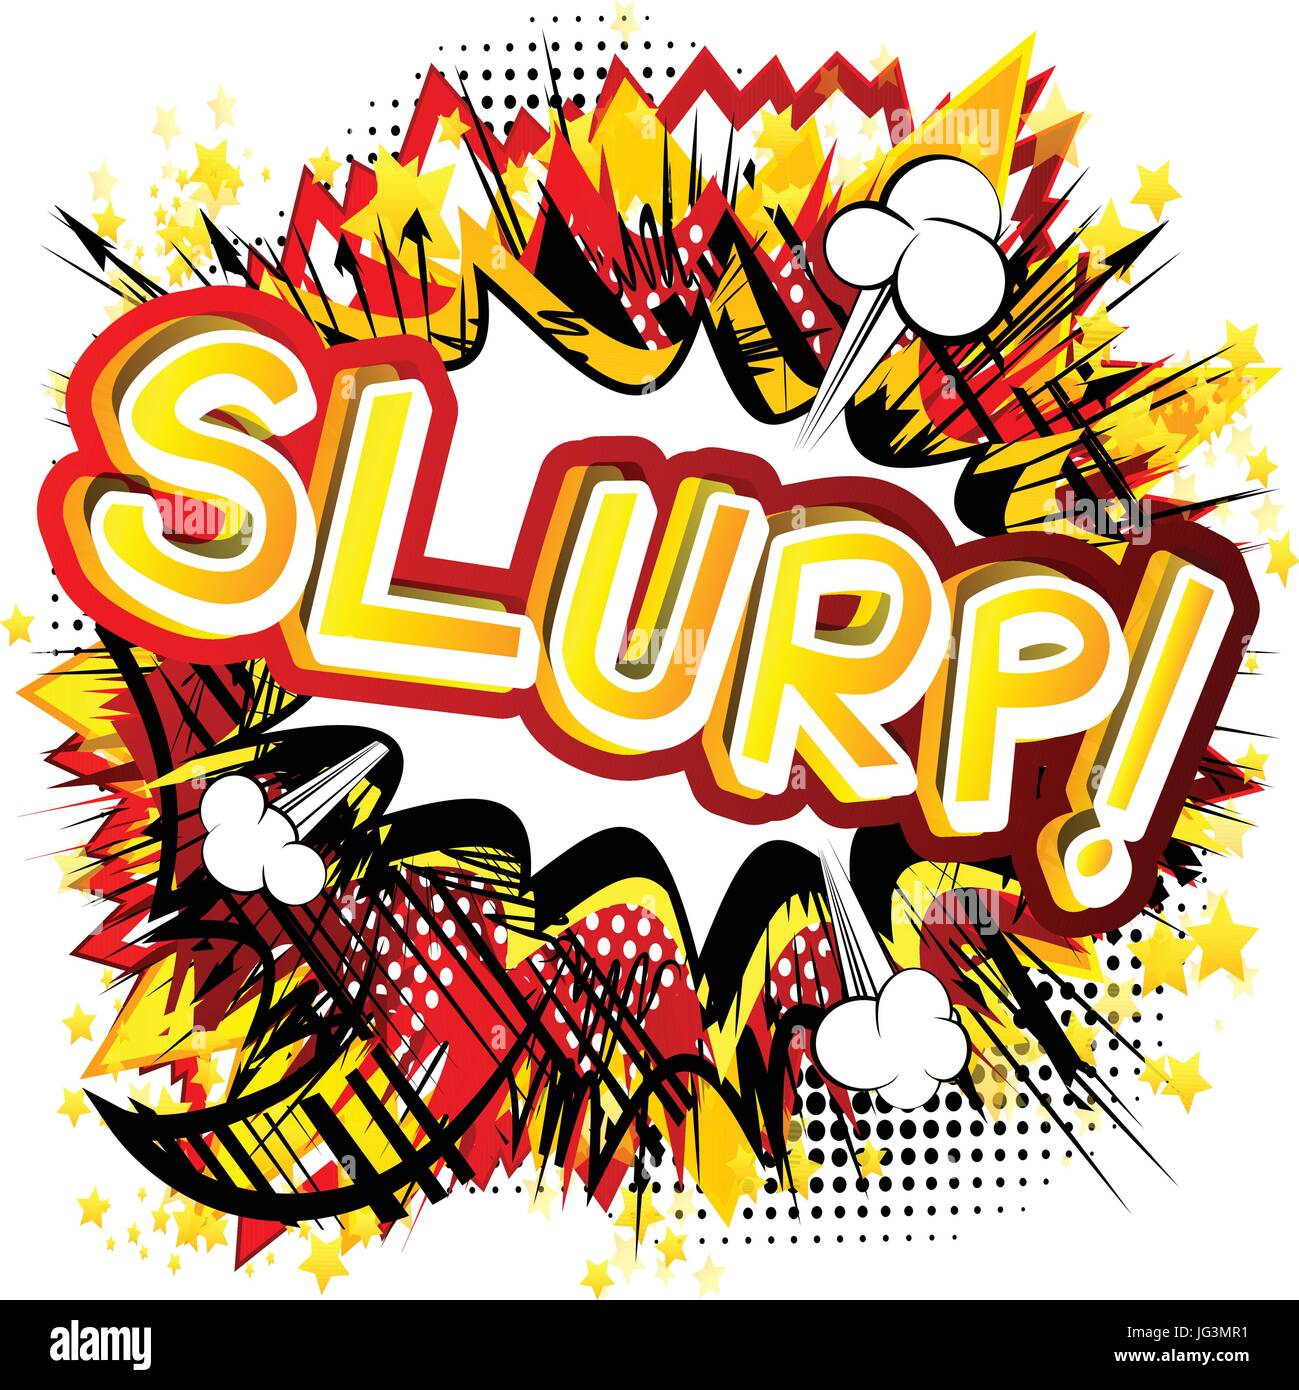 Slurp! - Vector illustrated comic book style expression. - Stock Image